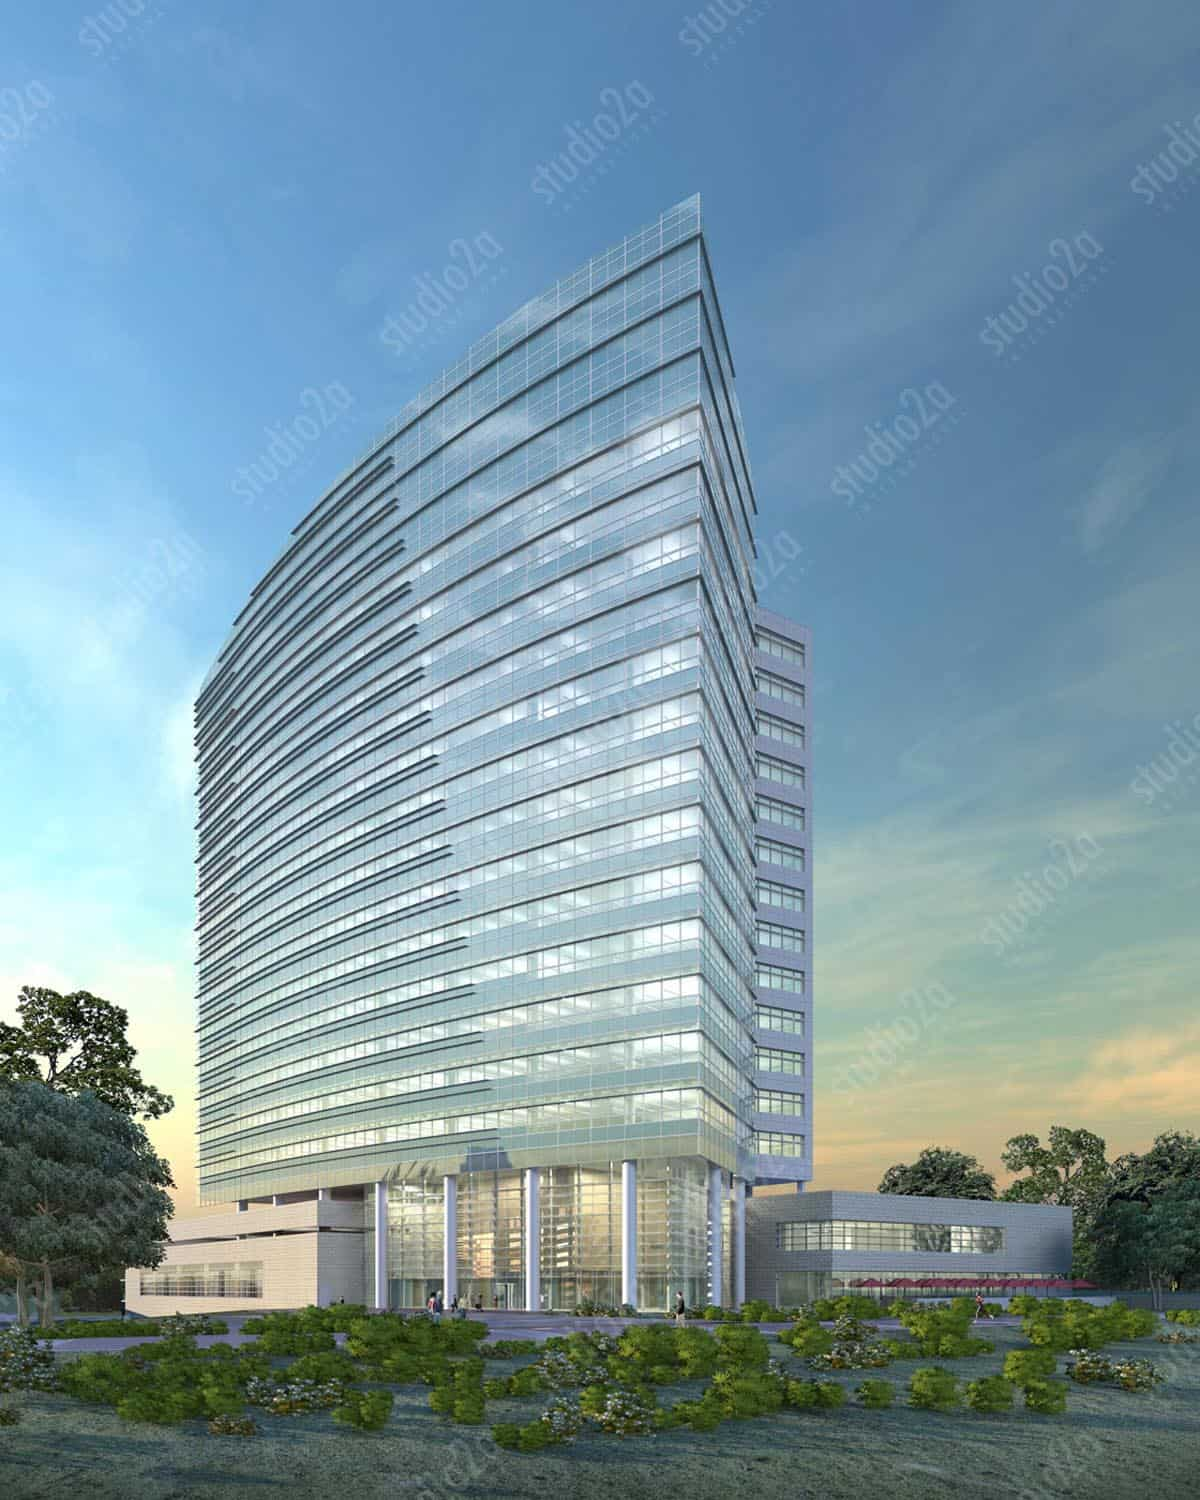 3D Rendering Animation For Architects Designers CALSTRS